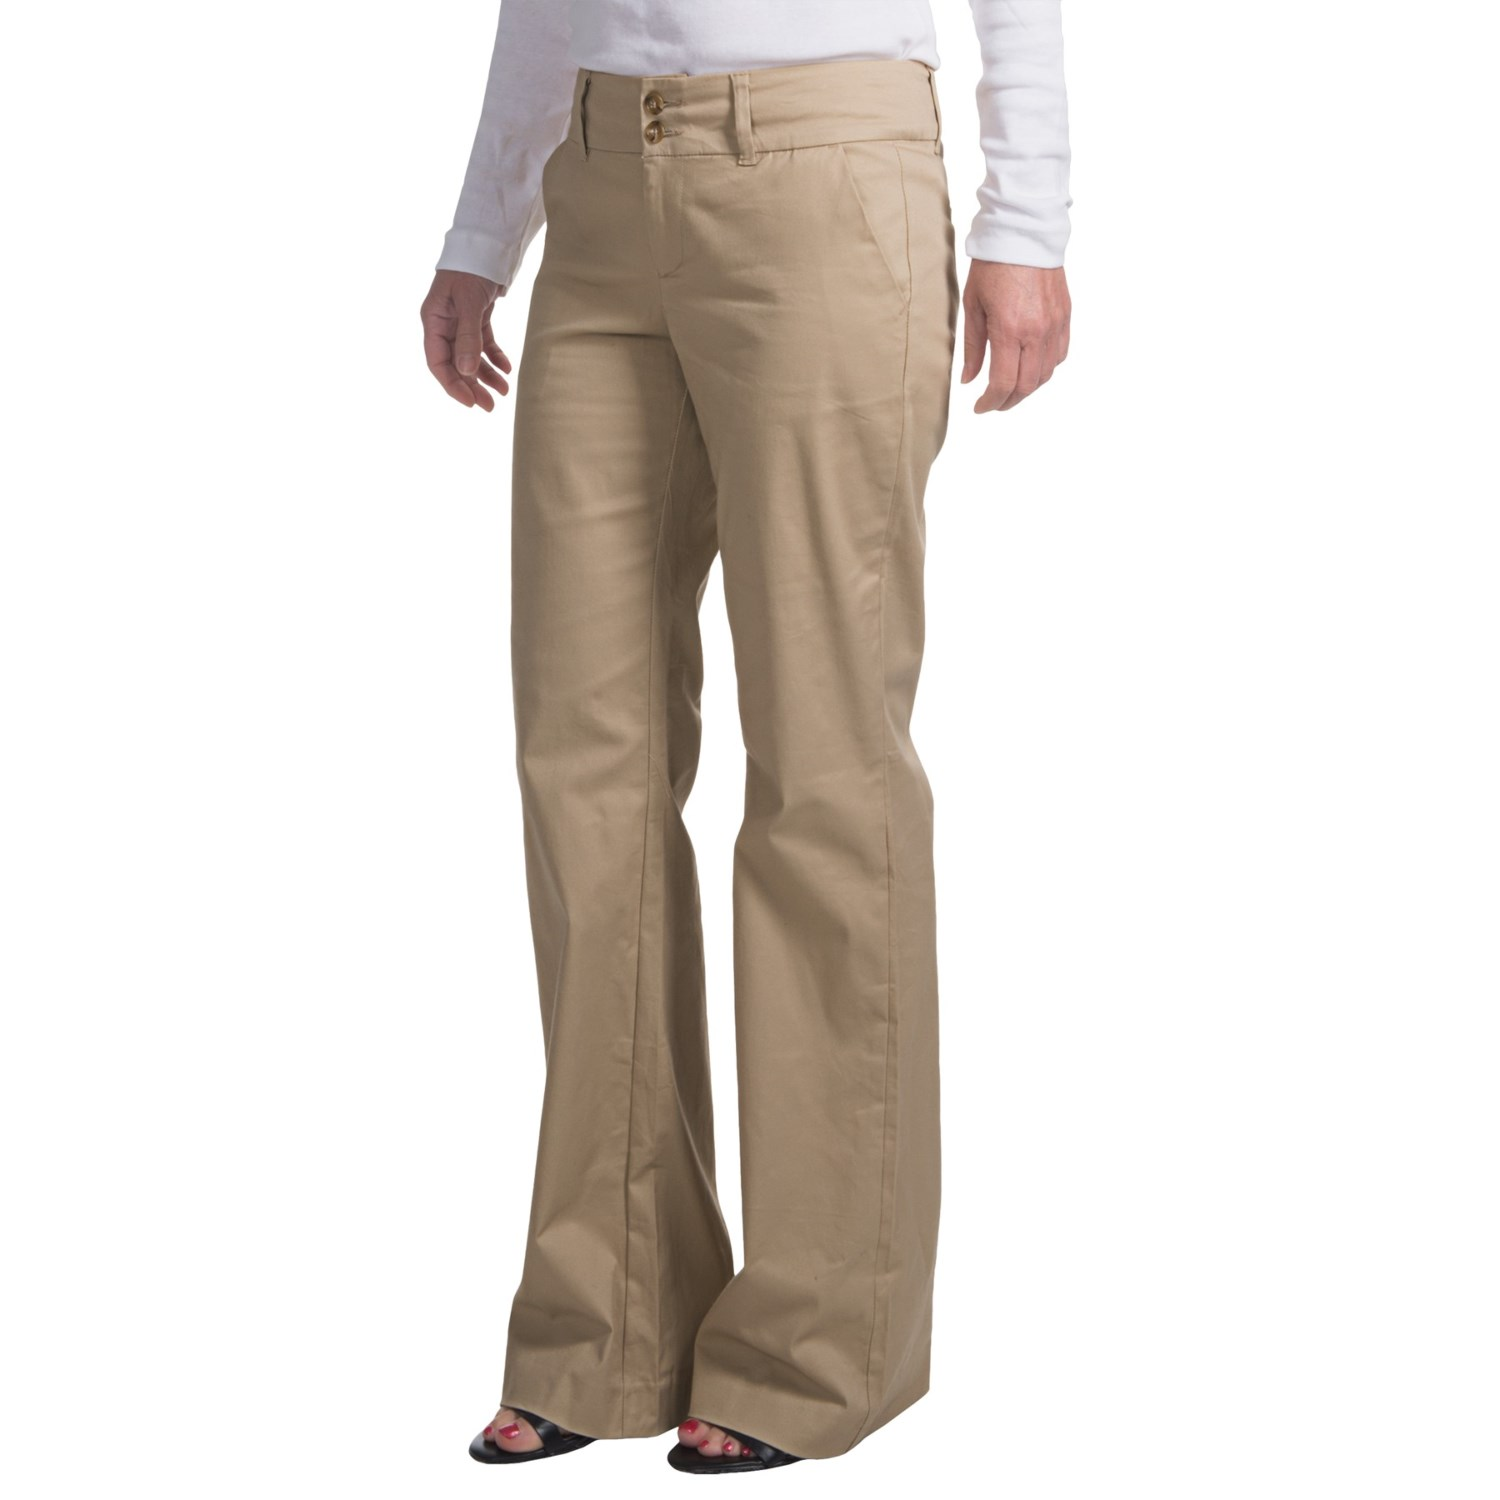 womens stretch khaki pants - Pi Pants